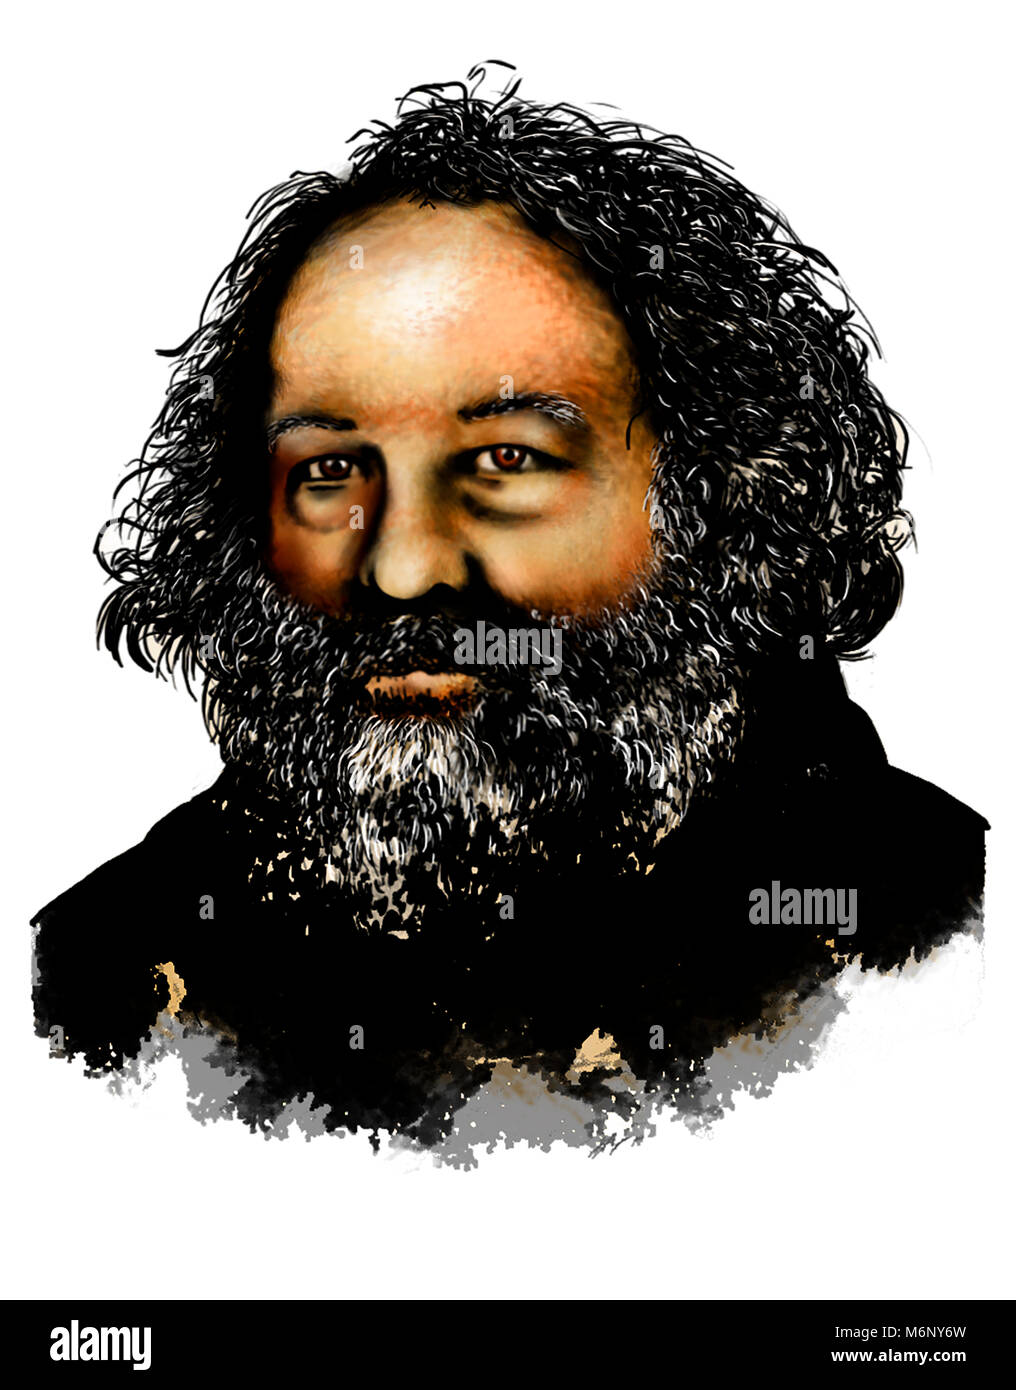 Drawing of Mikhail Bakunin. (1814 –1876) He was a Russian revolutionary anarchist and founder of collectivist anarchism. - Stock Image